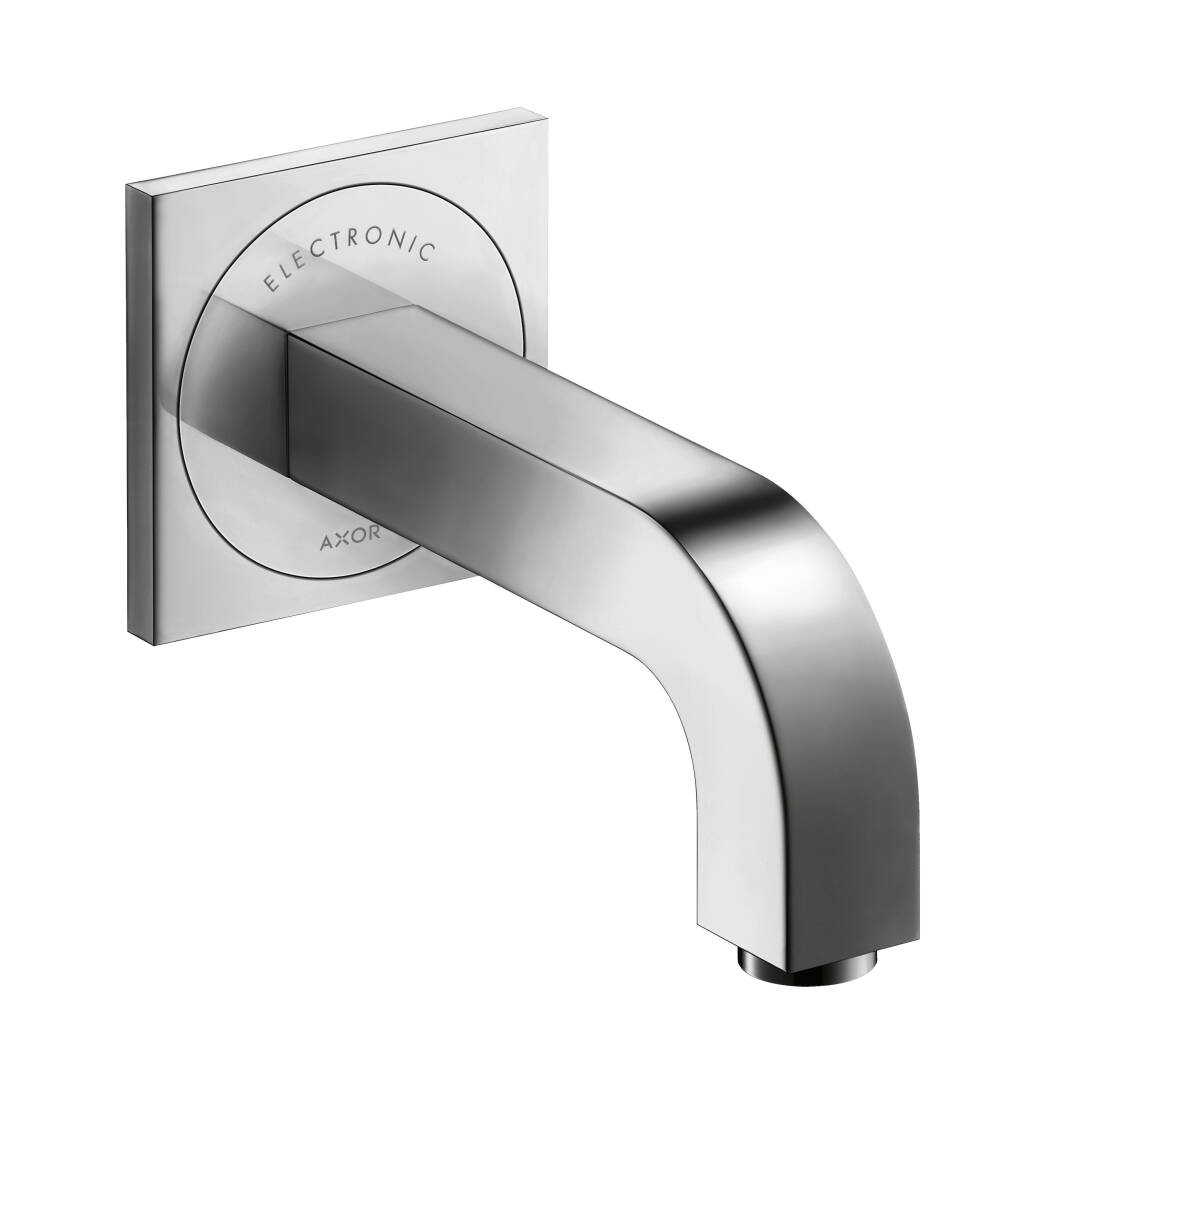 Electronic basin mixer for concealed installation wall-mounted with spout 161 mm, Stainless Steel Optic, 39117800